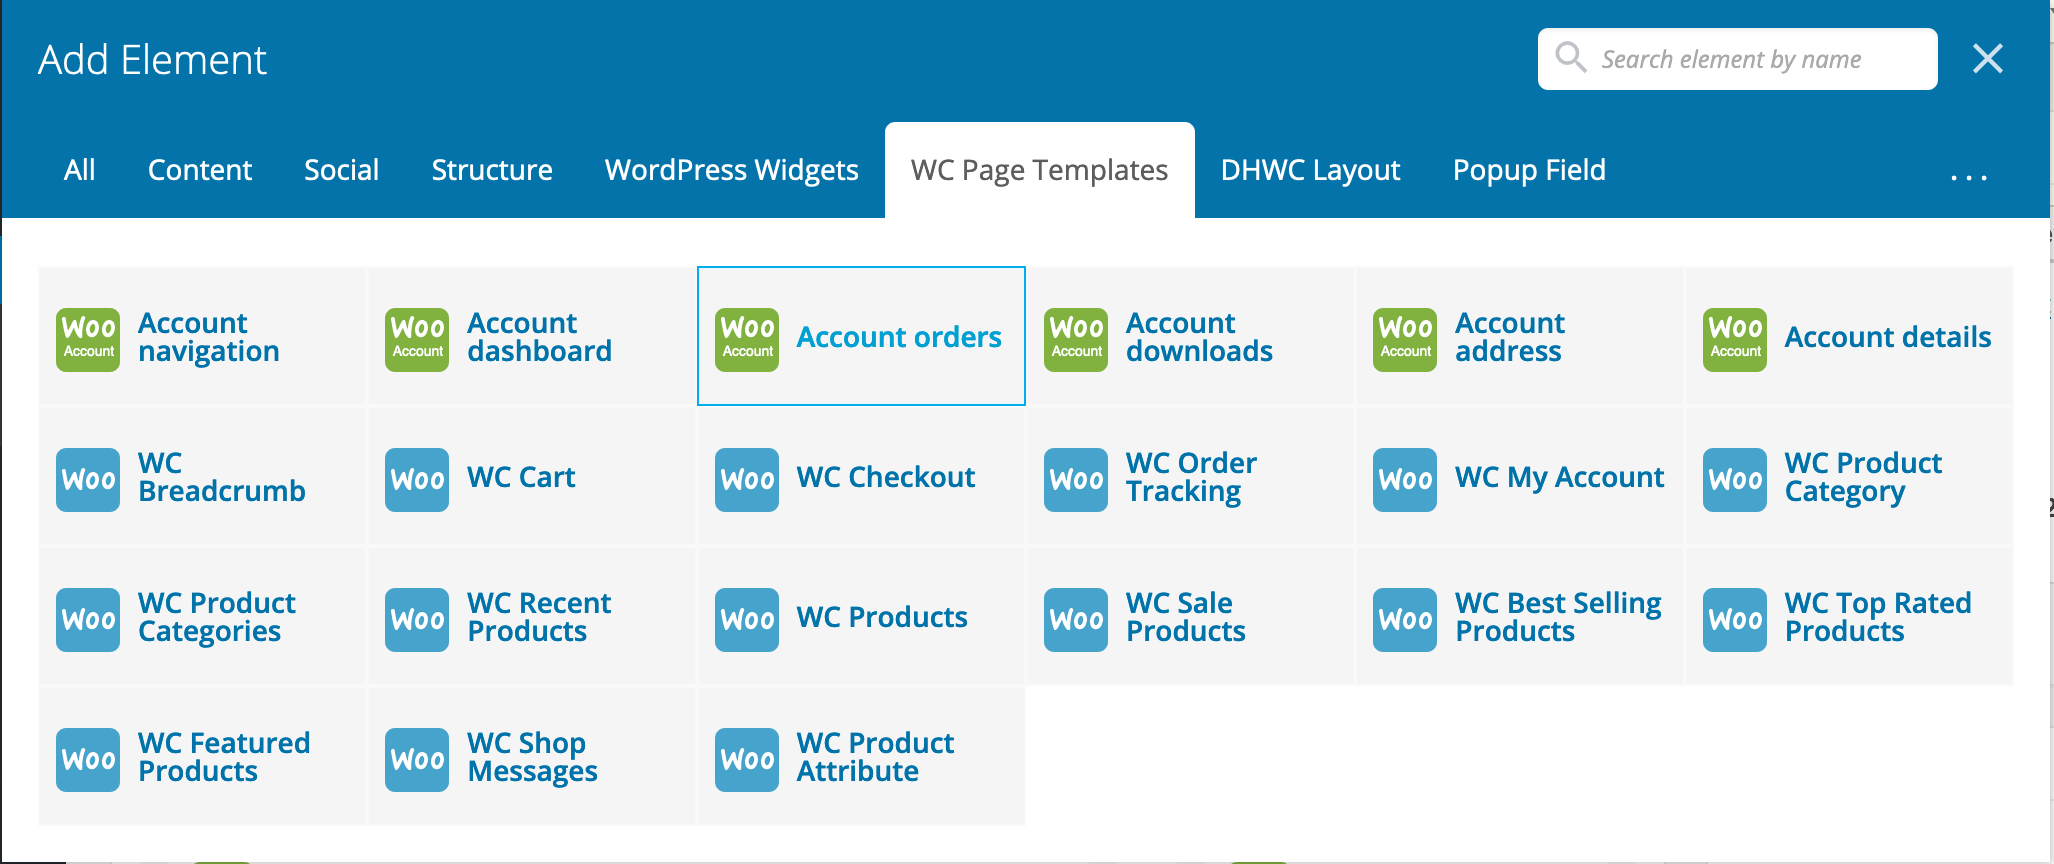 DHWCPage - WooCommerce Page Template Builder - 4